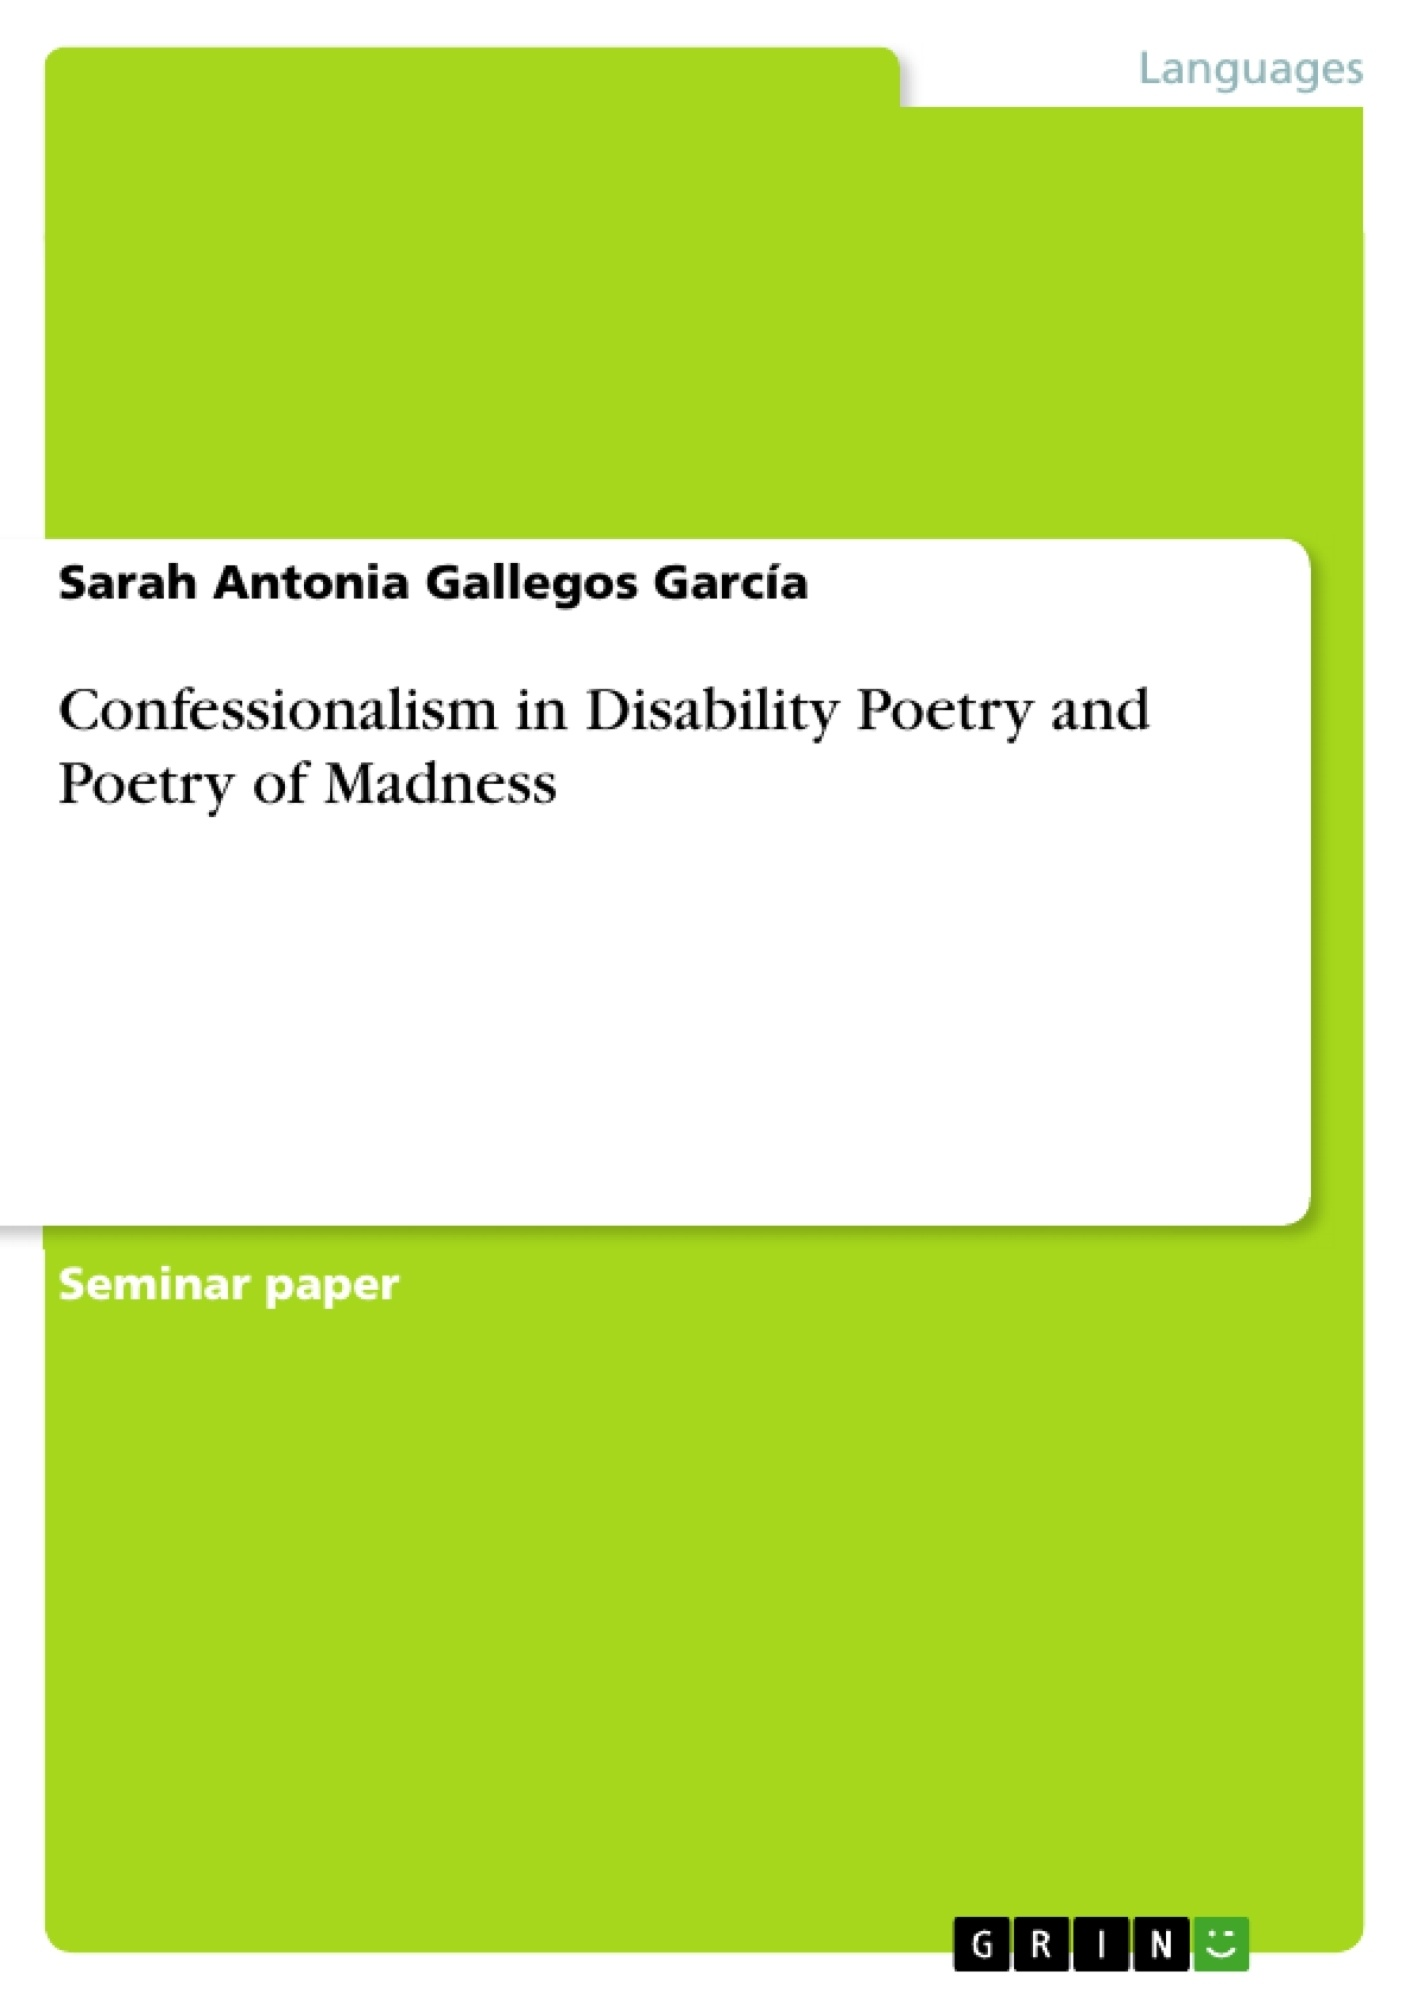 Title: Confessionalism in Disability Poetry and Poetry of Madness